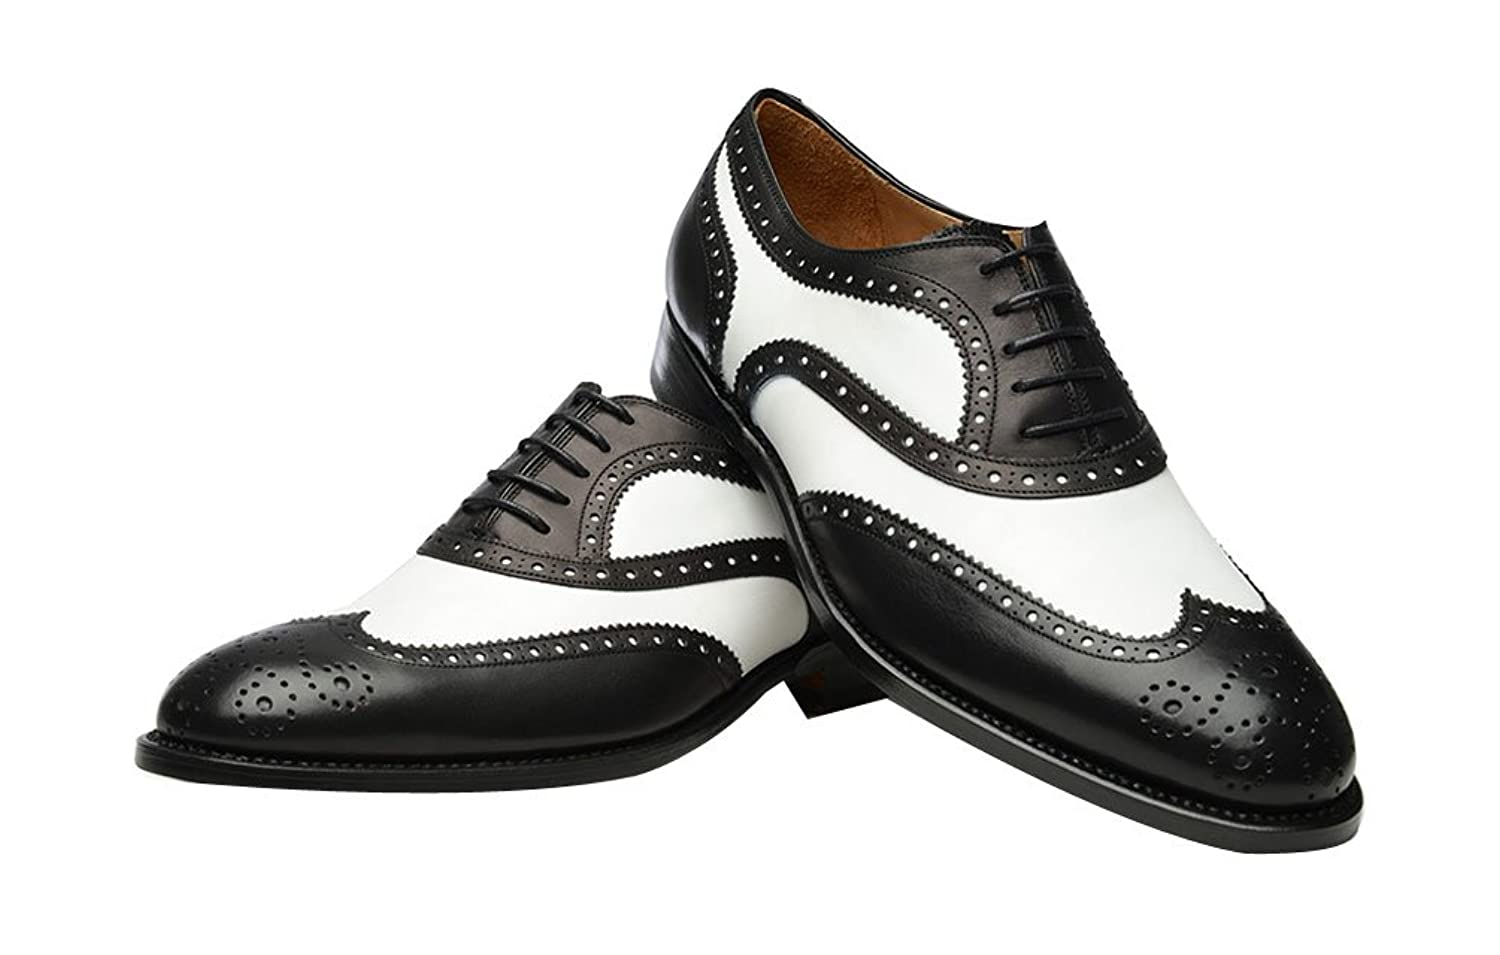 Peaky Blinders & Boardwalk Empire: Men's 1920s Gangster Clothing ROYAL WIND Geninue Leather Spectator Shoes Mens Black White Lace up Wing Tip Perforated Dress Shoes $79.99 AT vintagedancer.com